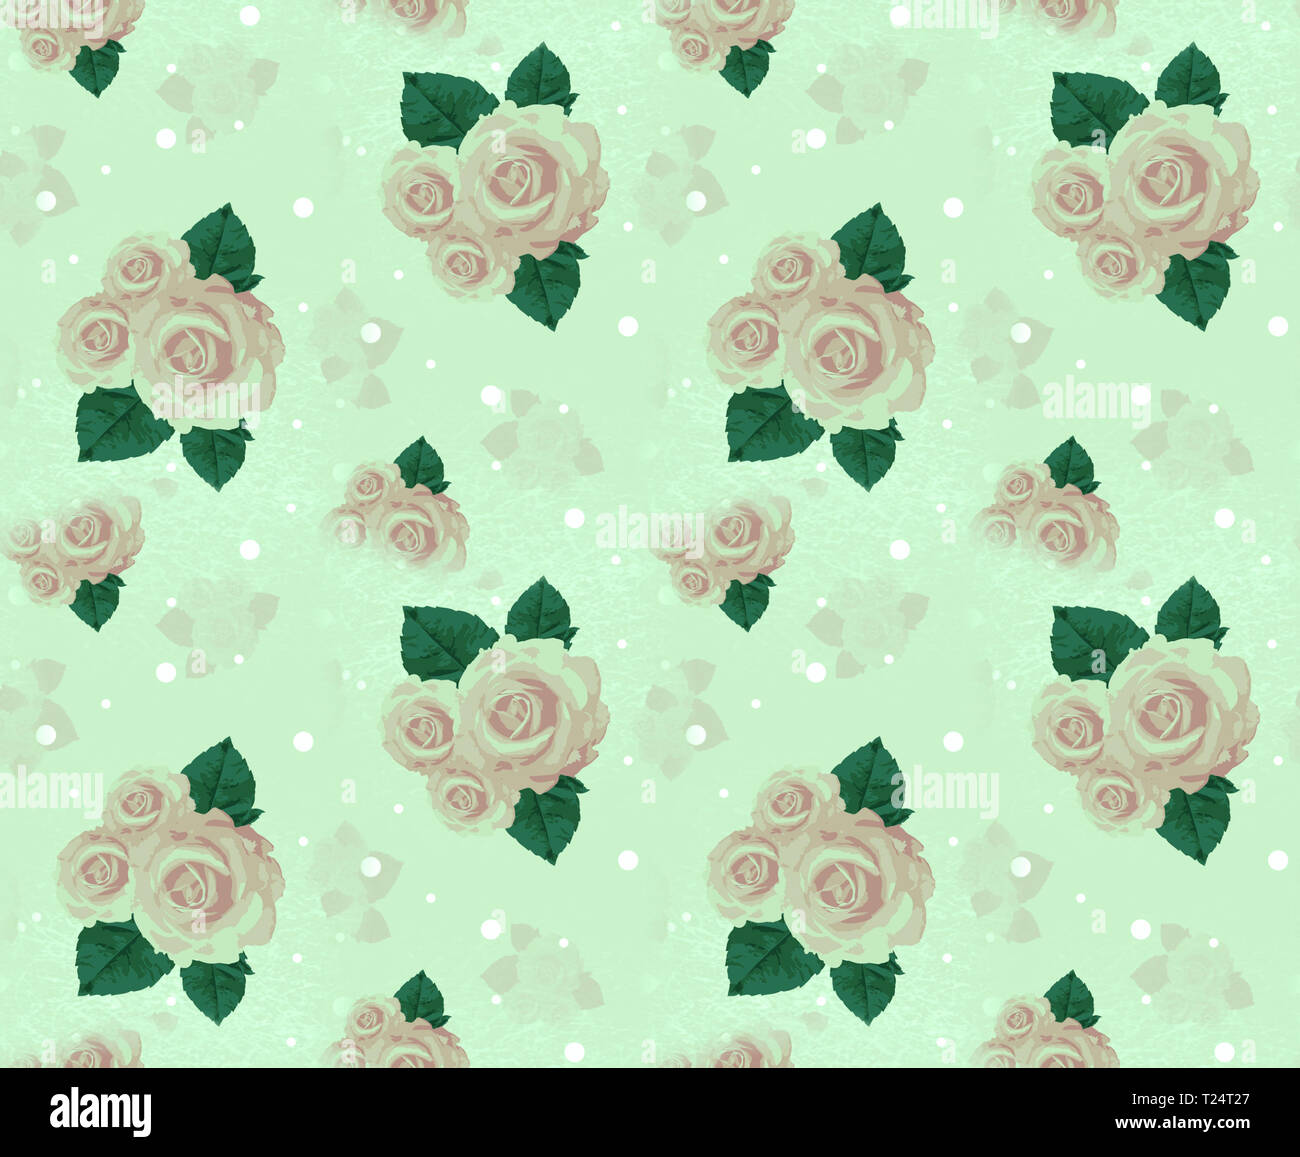 Seamless wall-paper with roses, green. A vintage decorative pattern, a print for fabric, interior design, wedding invitation, a background. A basis fo - Stock Image